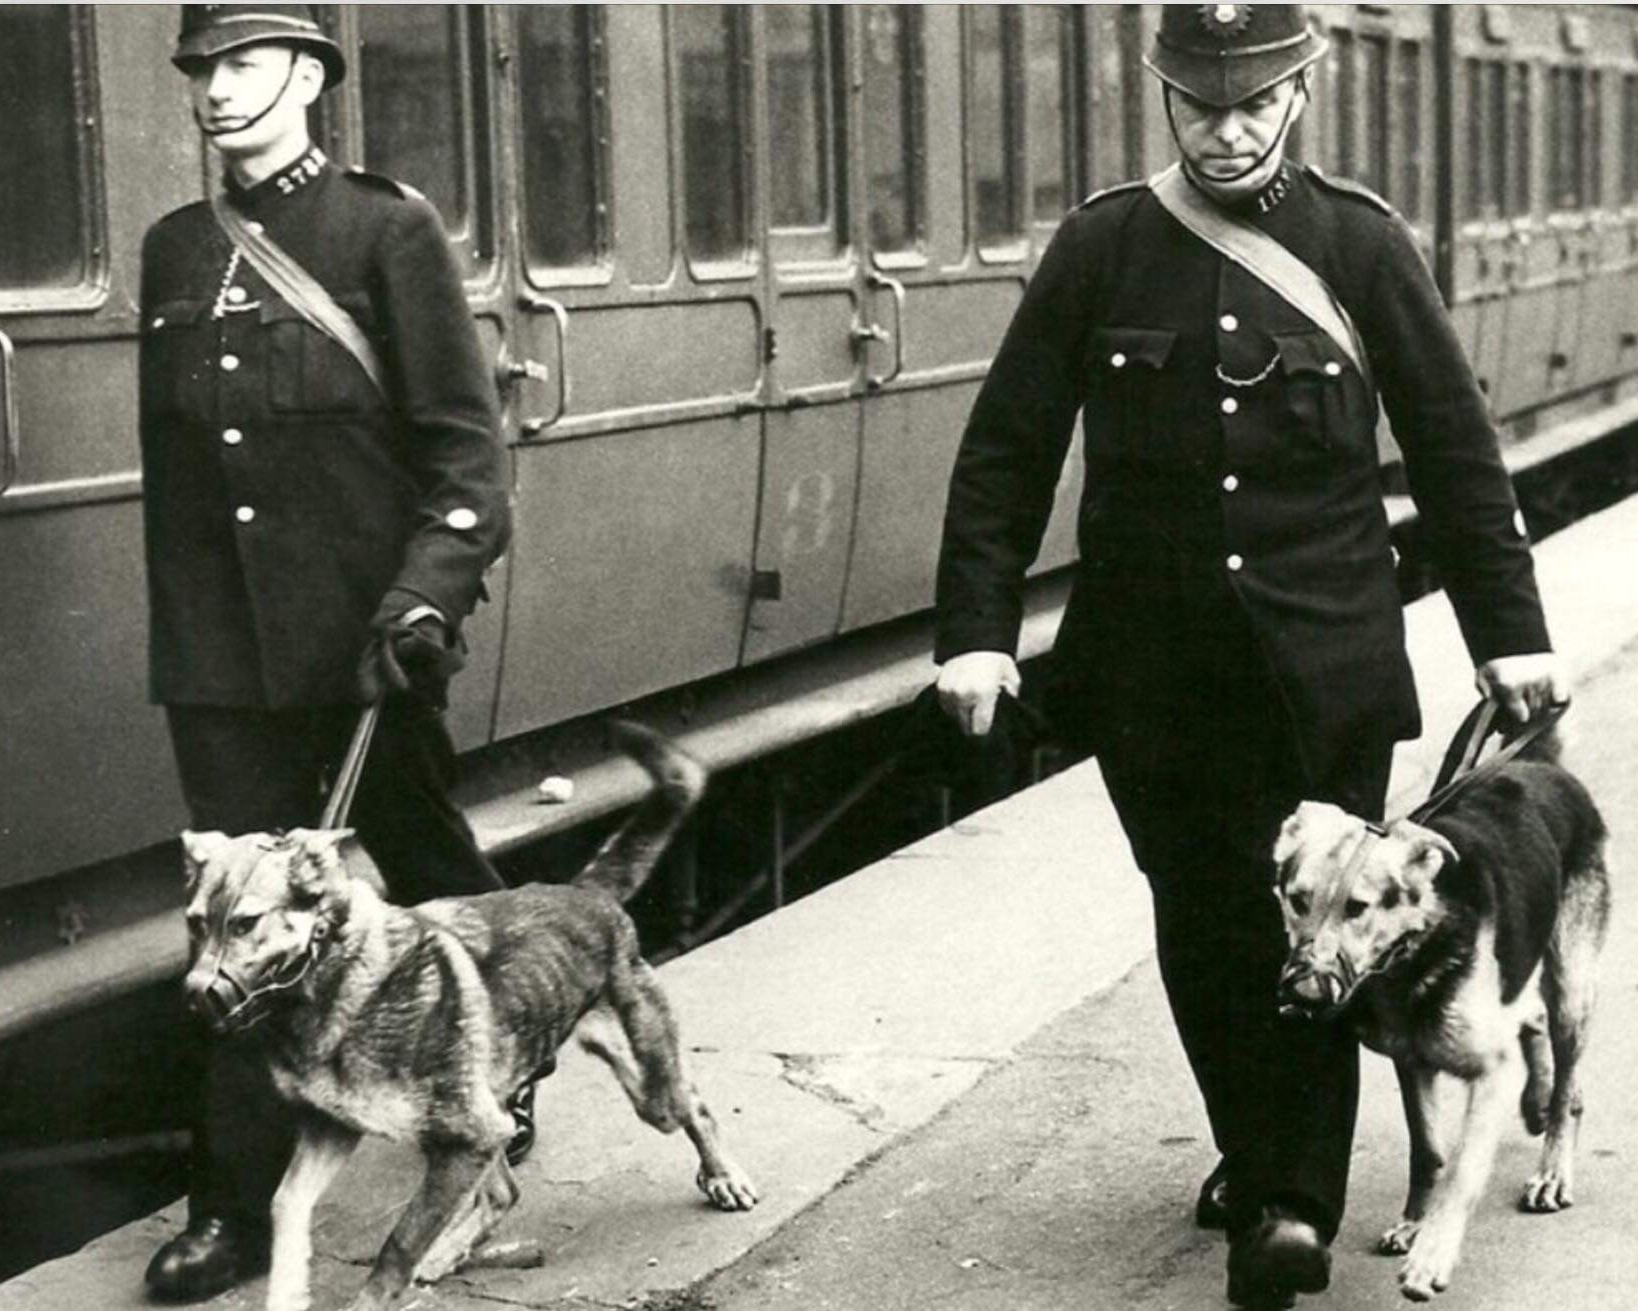 1940-50s: Railway Police - Following the end of WW2 Railway Police Forces started to be amalgamated into what became the British Transport Commission Police. A decision at this time was made to muzzle dogs whilst they were working. This led to the belief that BTCP dogs were more vicious that those being used by City Police Forces which weren't muzzled. A decision was soon made to dispense with the muzzle for all BTCP dogs.